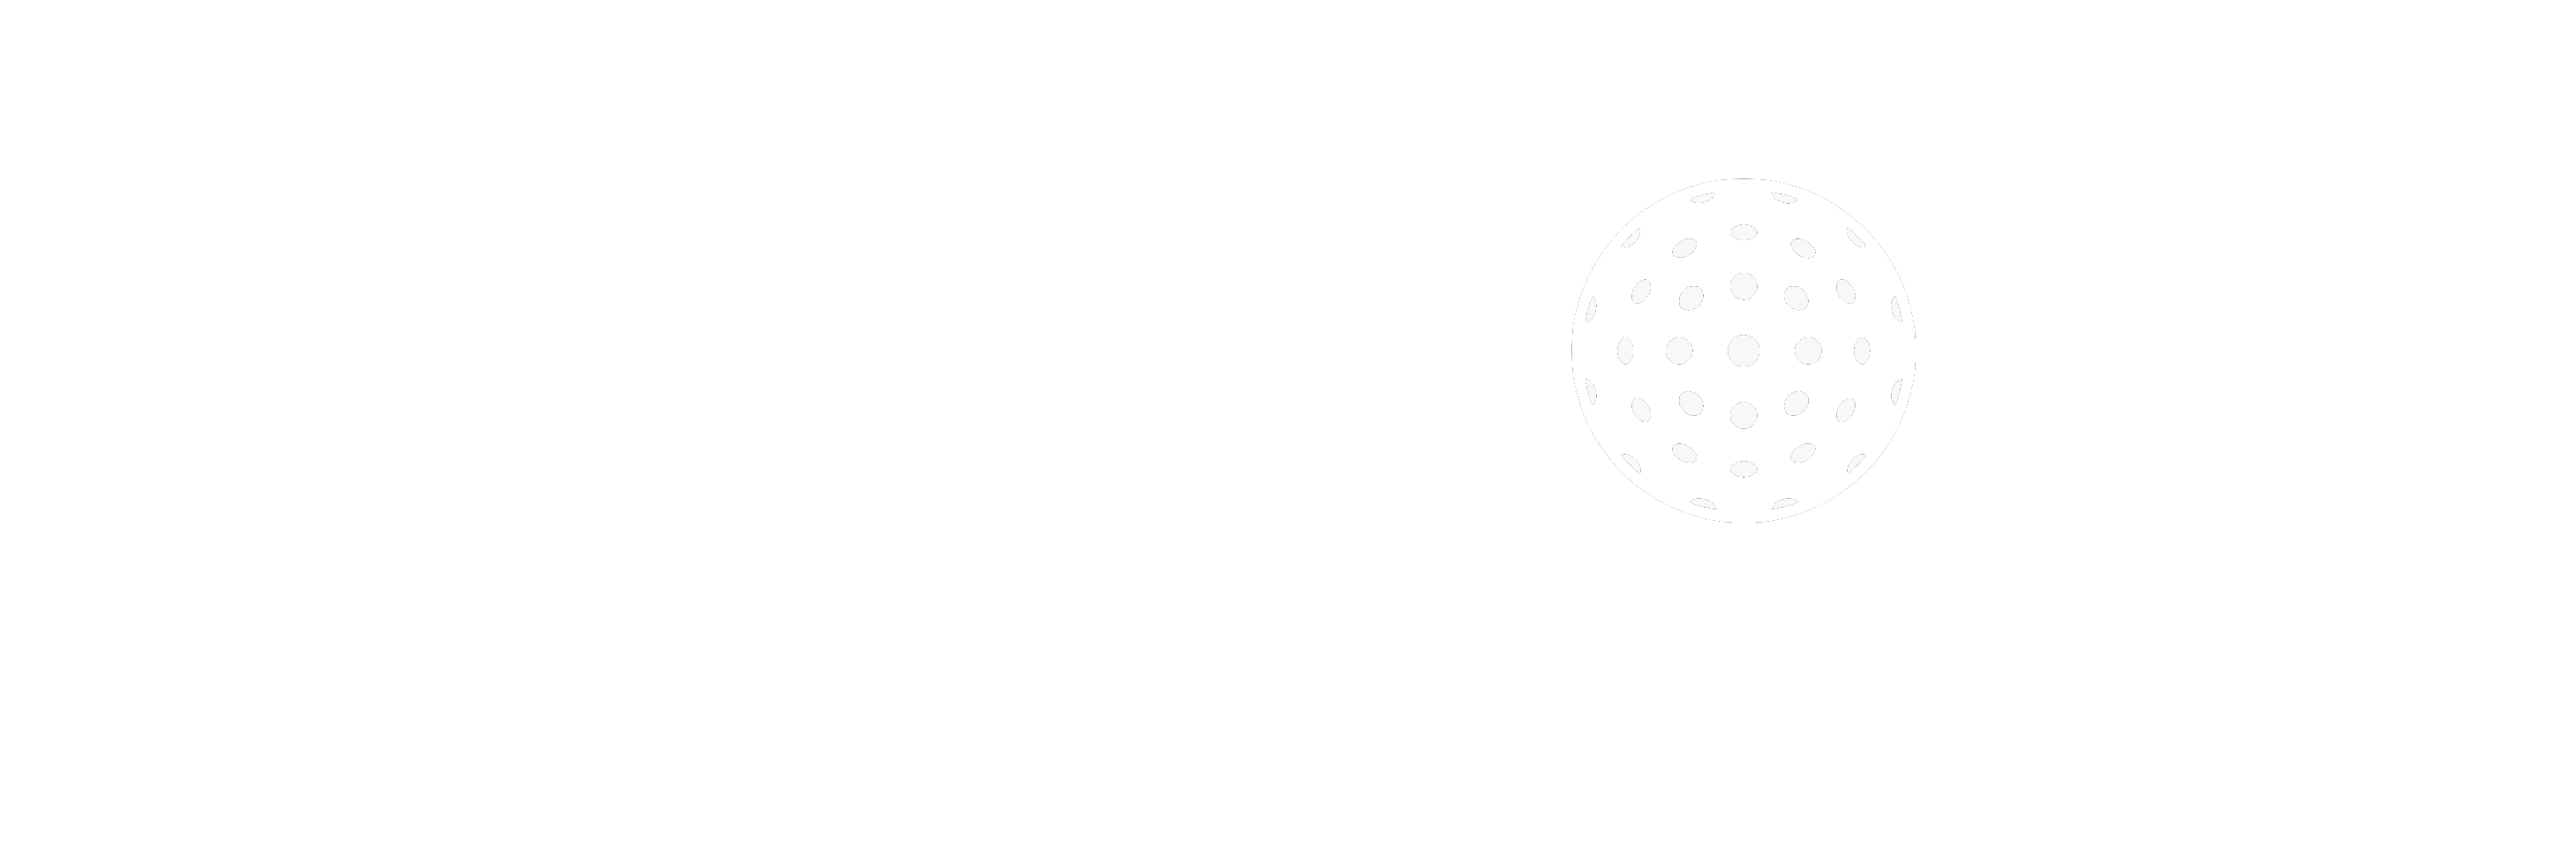 X-Tractor Golf Ball Pick Up Logo